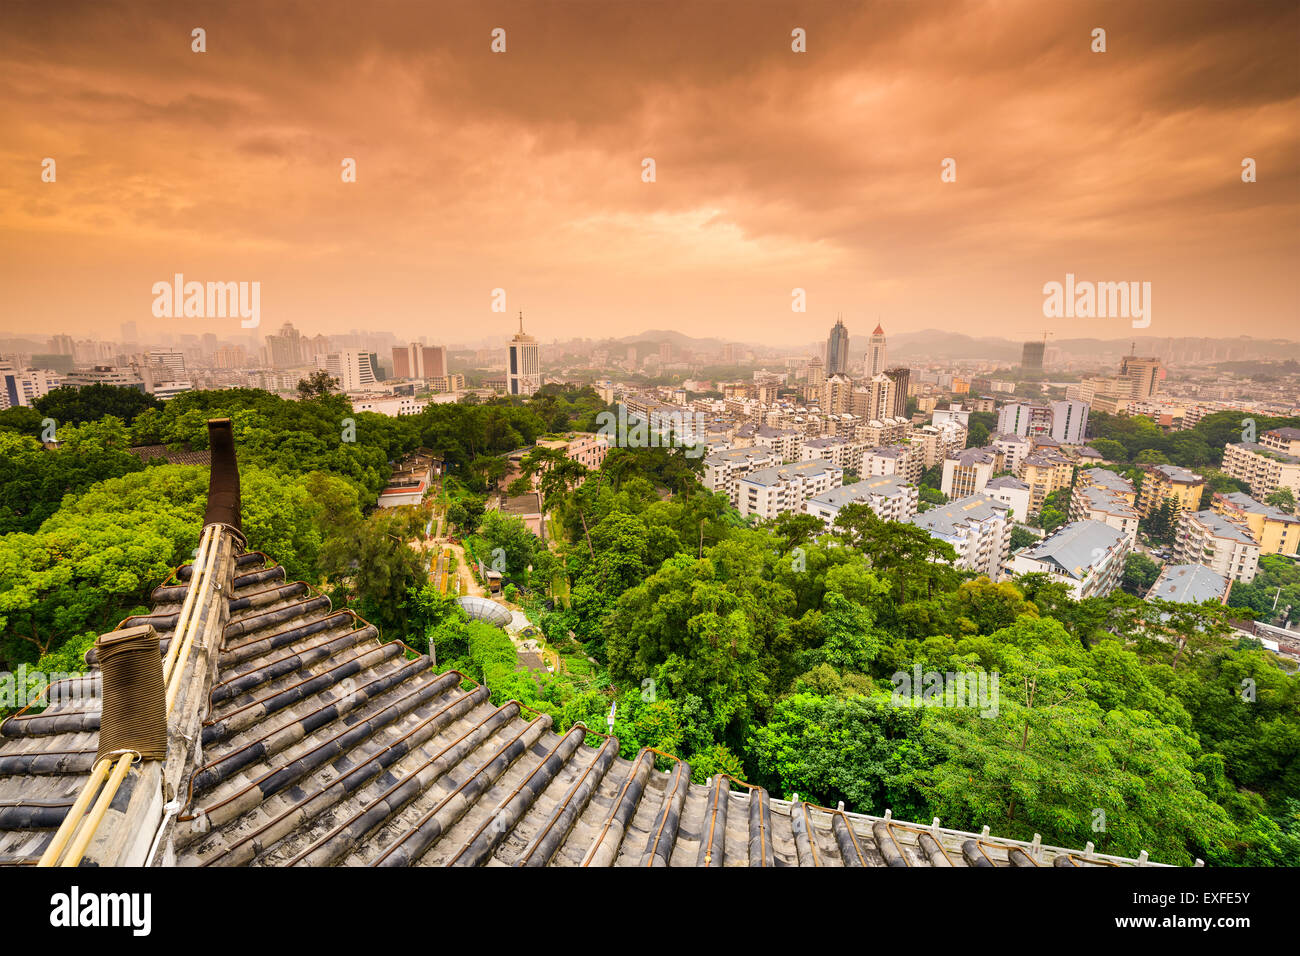 Fuzhou, Fujian, China downtown cityscape from Zhenai Tower. - Stock Image